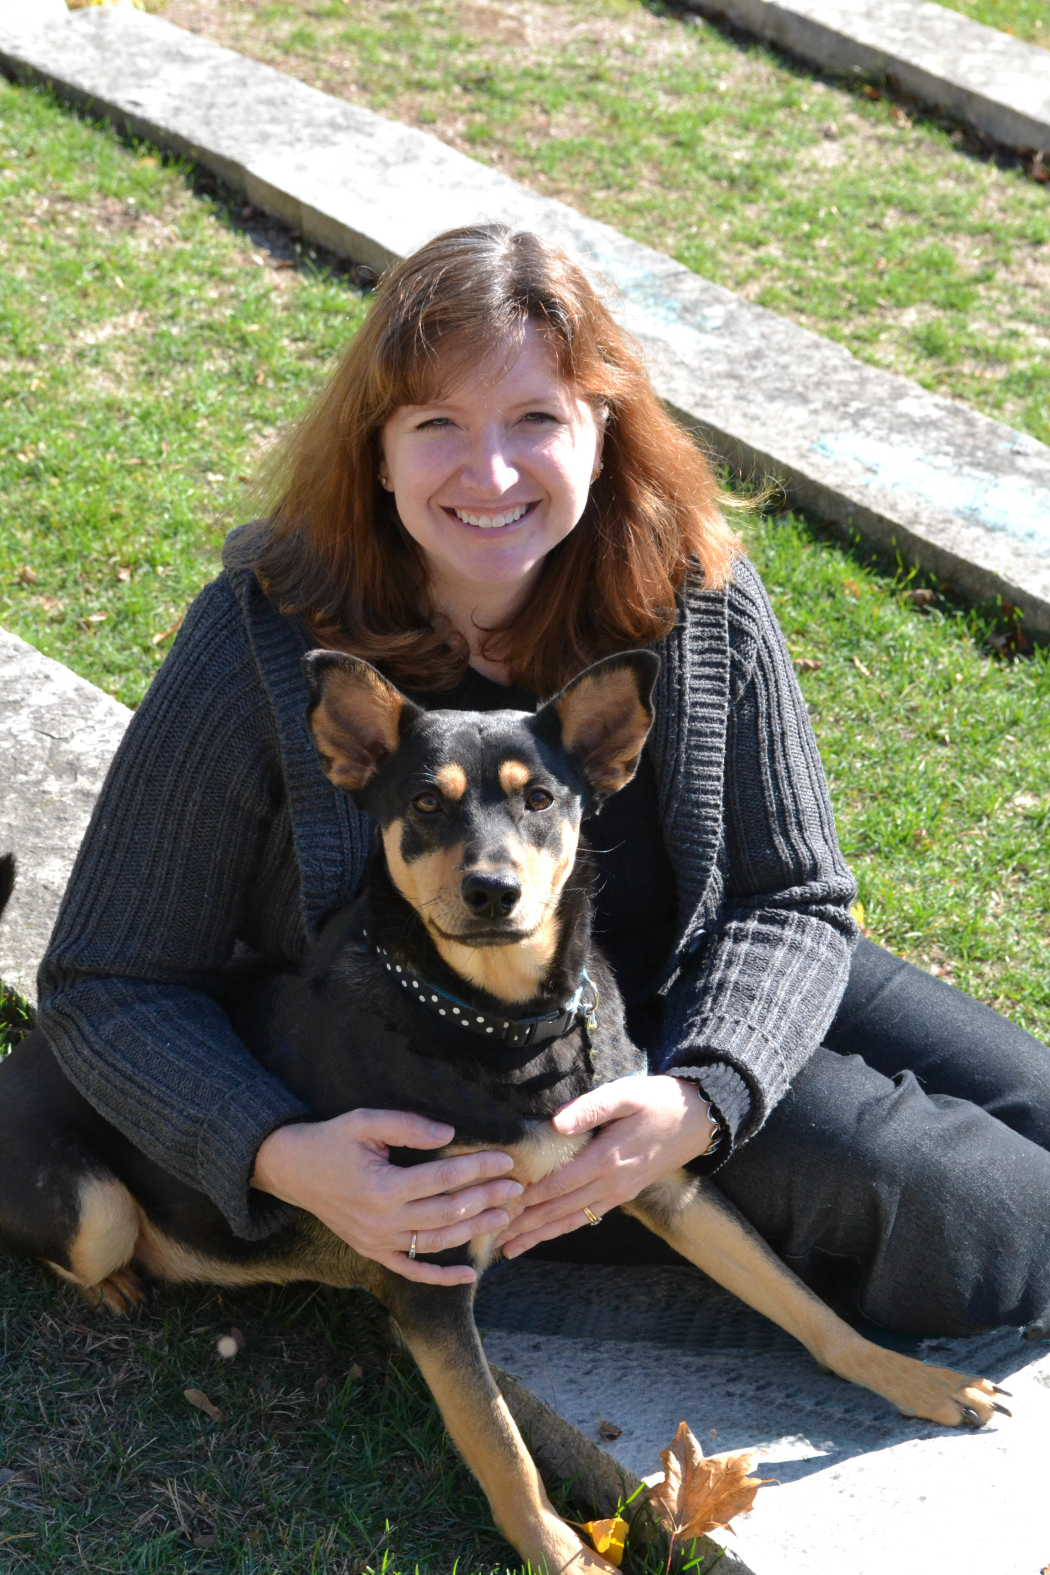 karin-with-dog2012.JPG